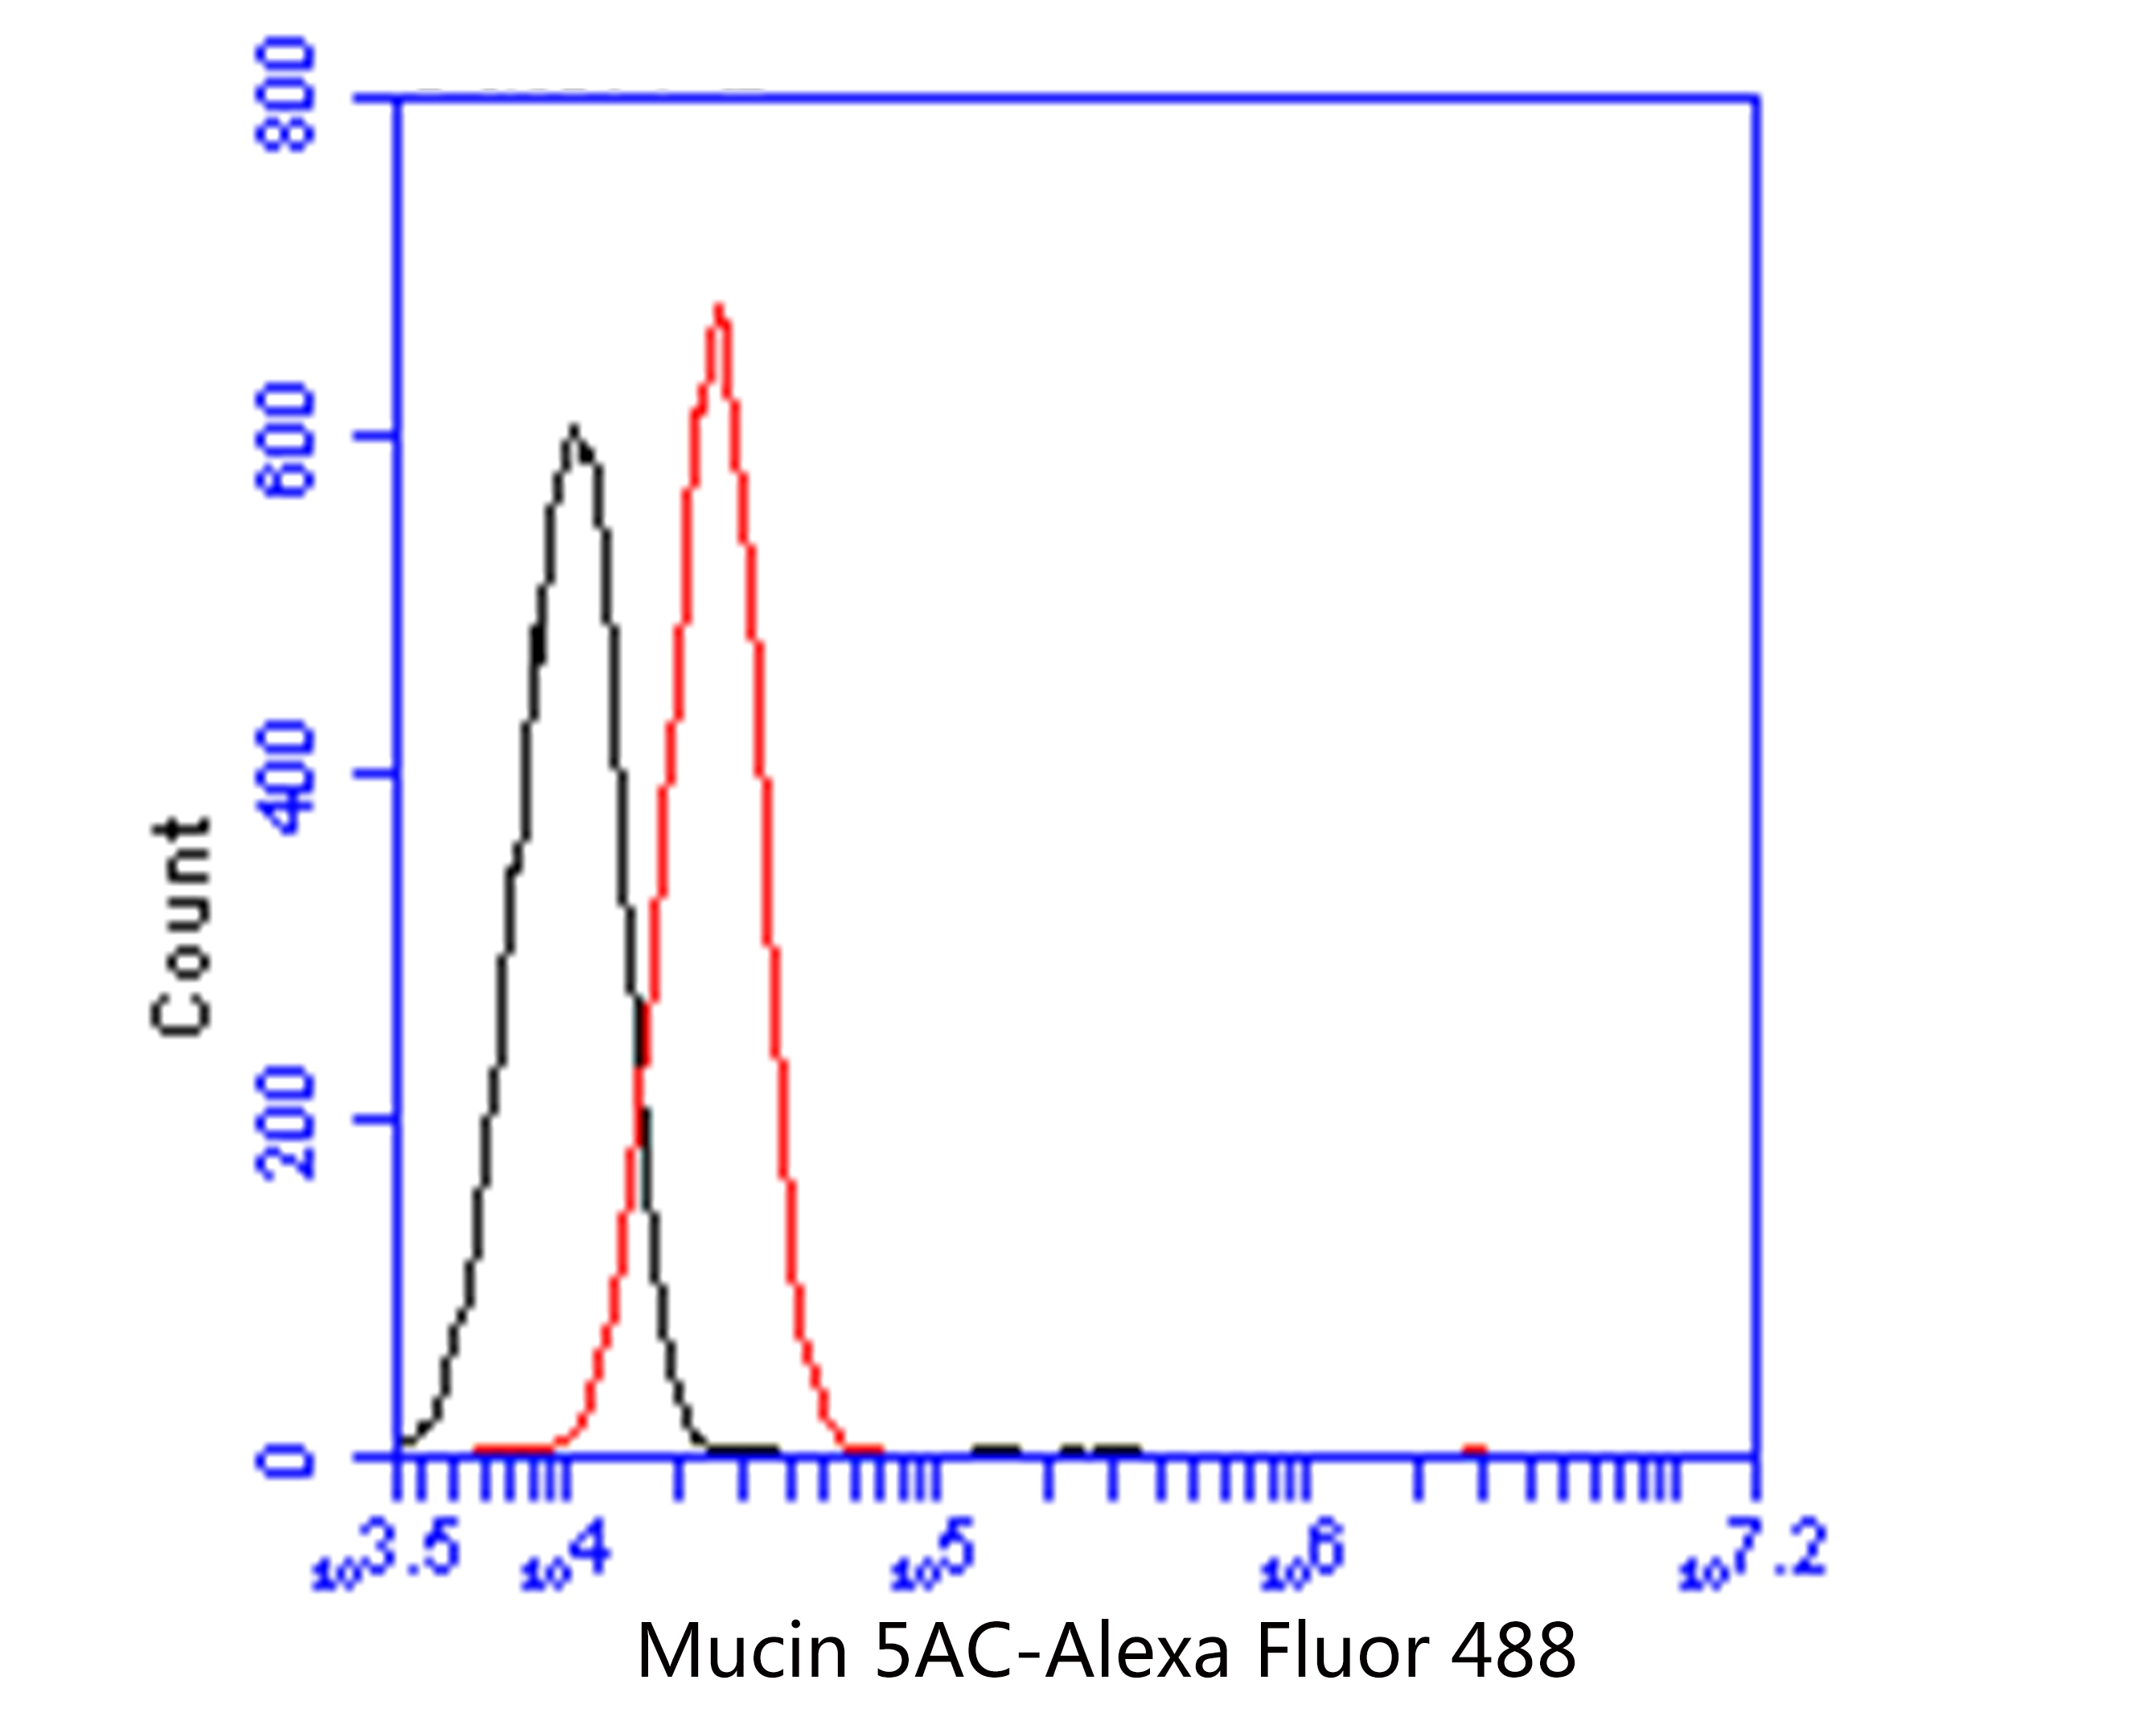 Flow cytometric analysis of MUC5AC was done on A549 cells. The cells were fixed, permeabilized and stained with the primary antibody (EM1902-02, 1/50) (red). After incubation of the primary antibody at room temperature for an hour, the cells were stained with a Alexa Fluor 488-conjugated Goat anti-Mouse IgG Secondary antibody at 1/1000 dilution for 30 minutes.Unlabelled sample was used as a control (cells without incubation with primary antibody; black).